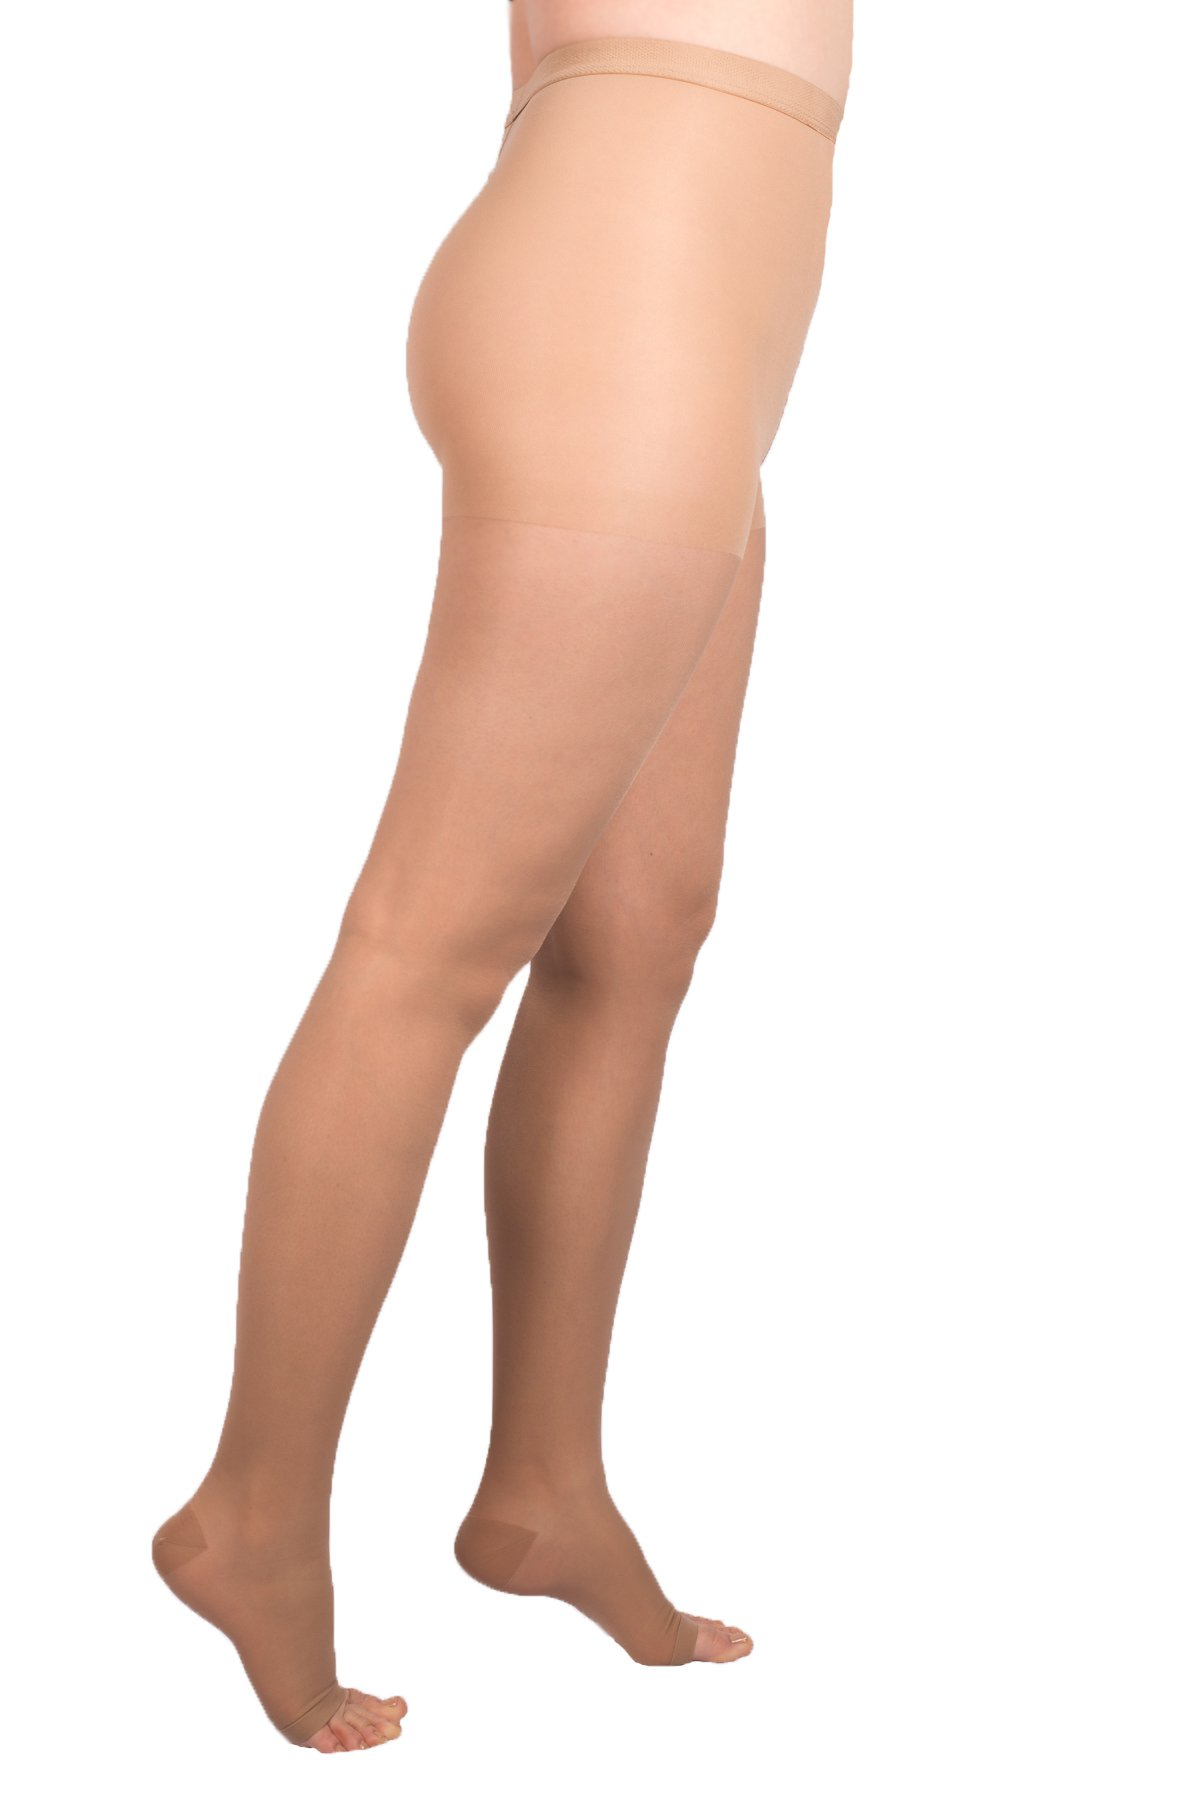 506514092 EvoNation Women s USA Made Open Toe Compression Pantyhose 15-20 mmHg  Moderate Pressure Medical Quality